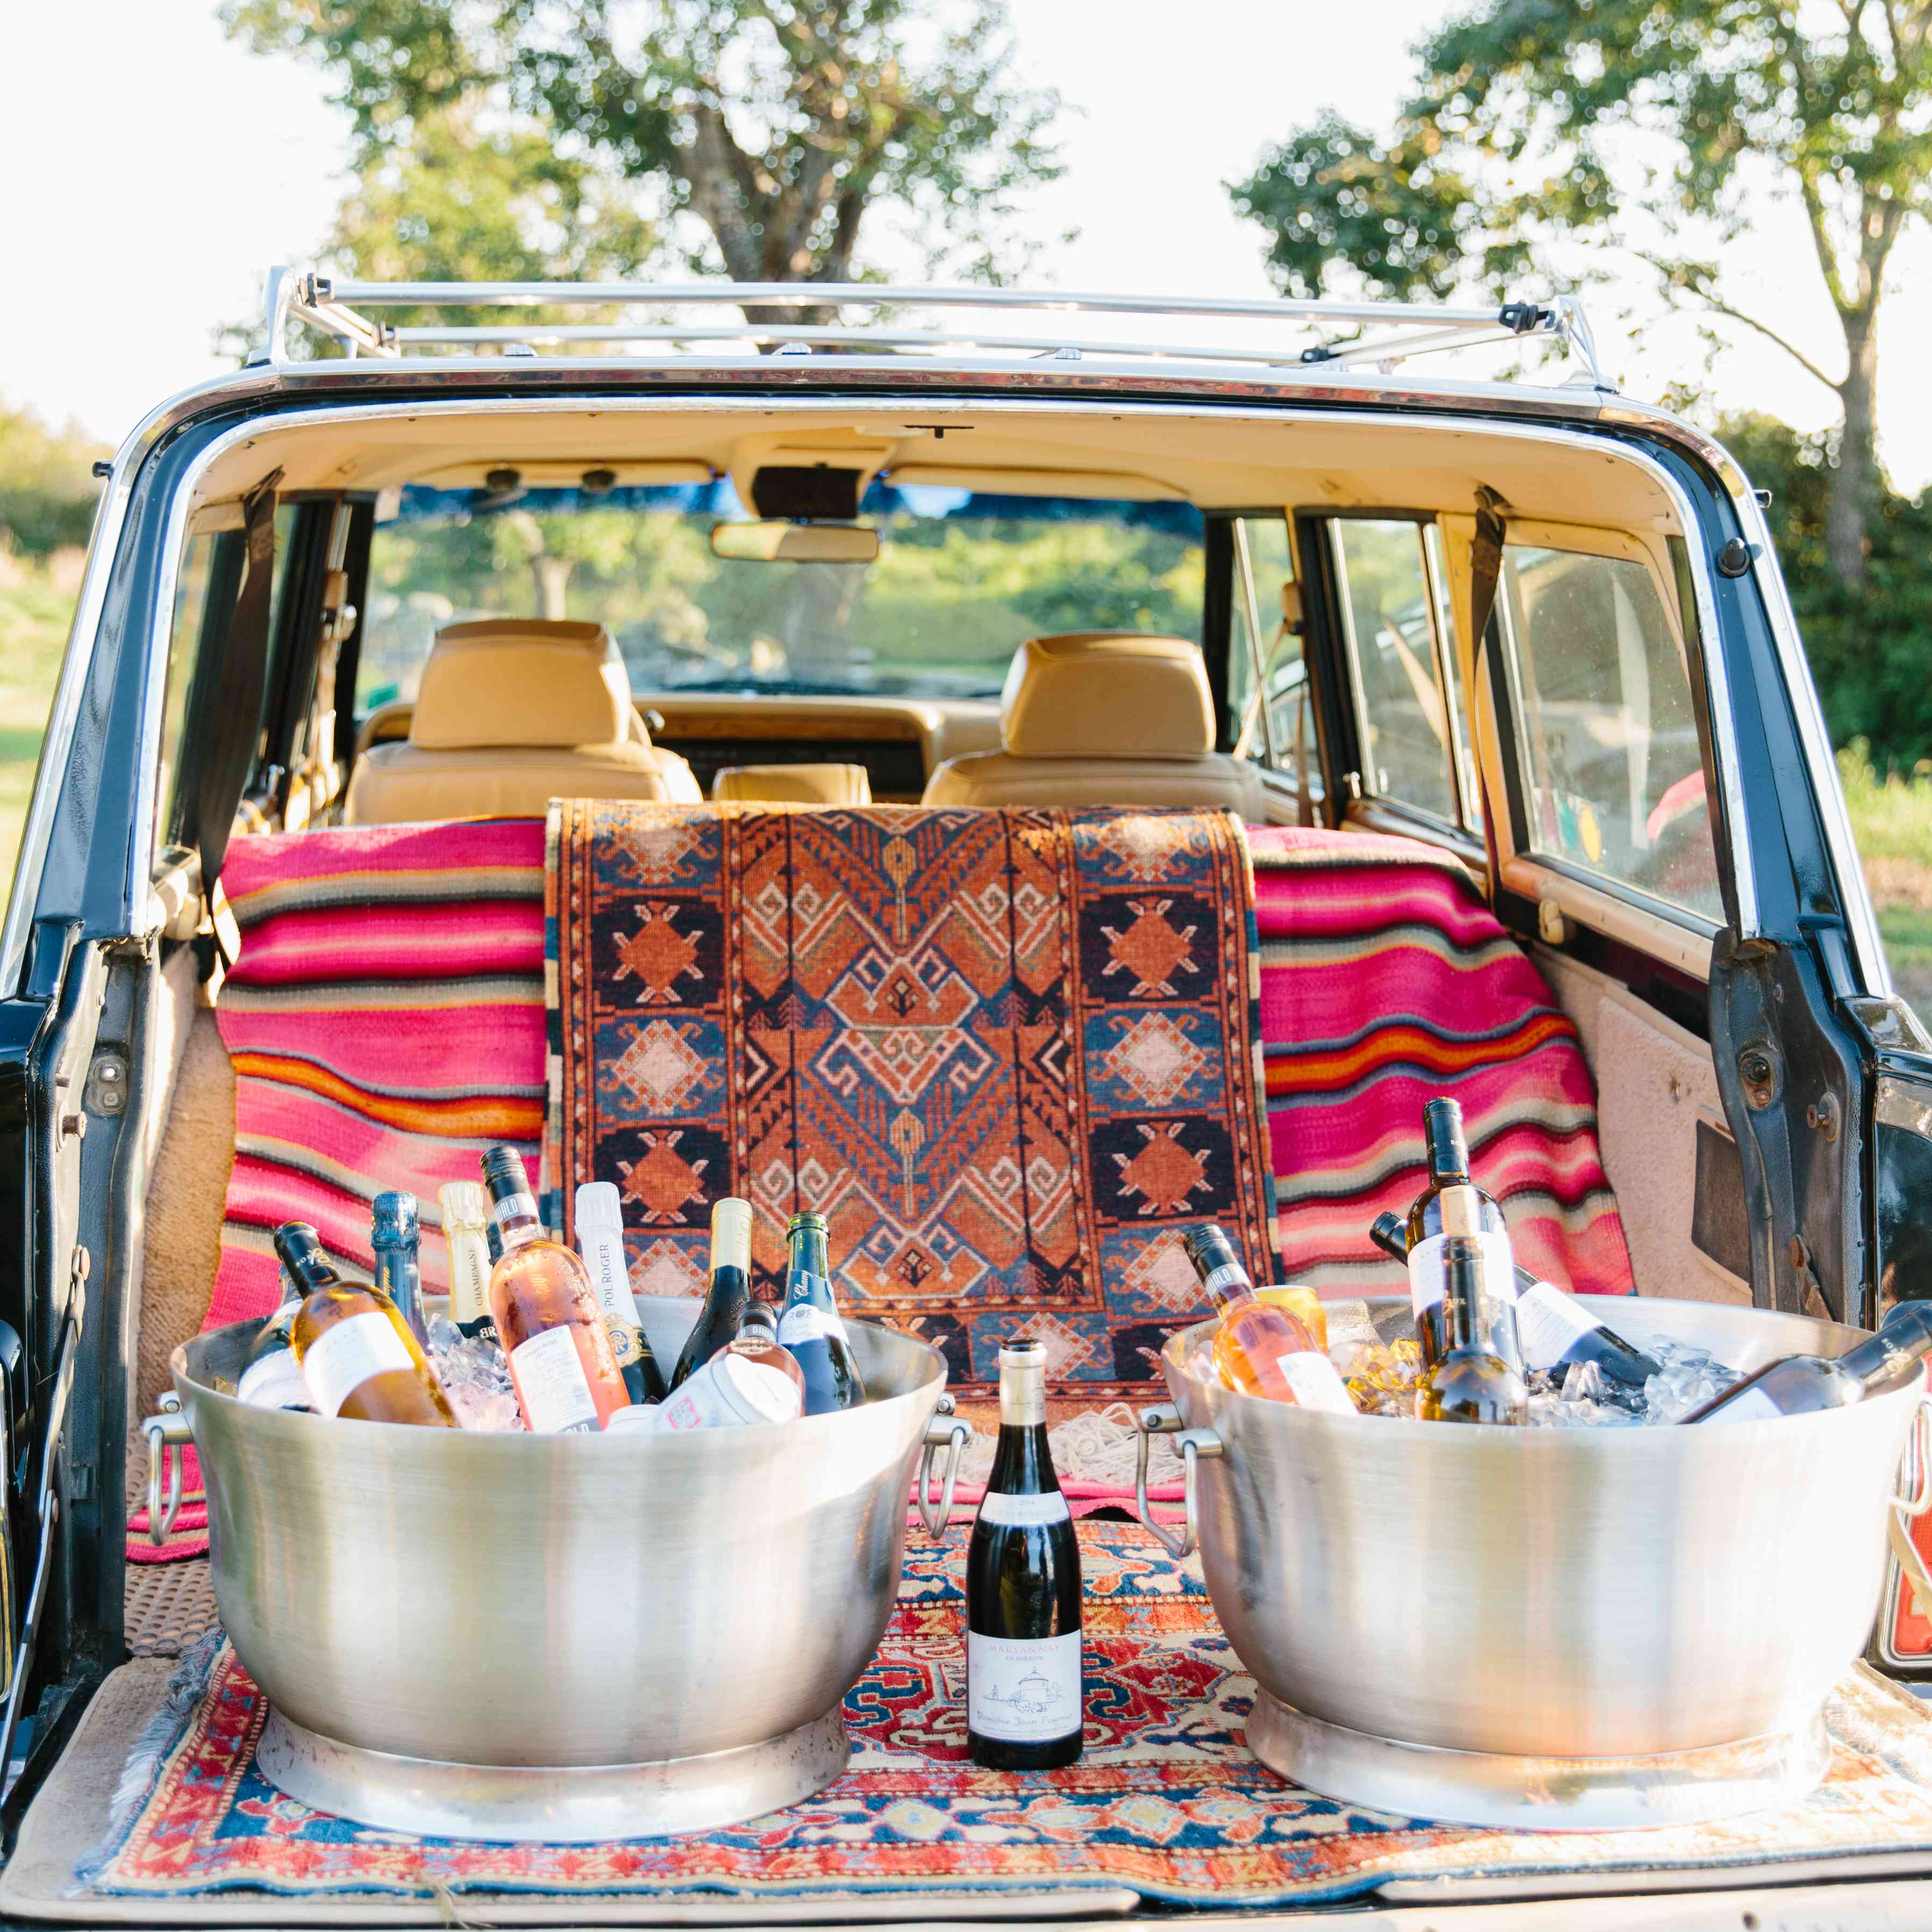 Trunk of car with rugs and champagne/wine on ice